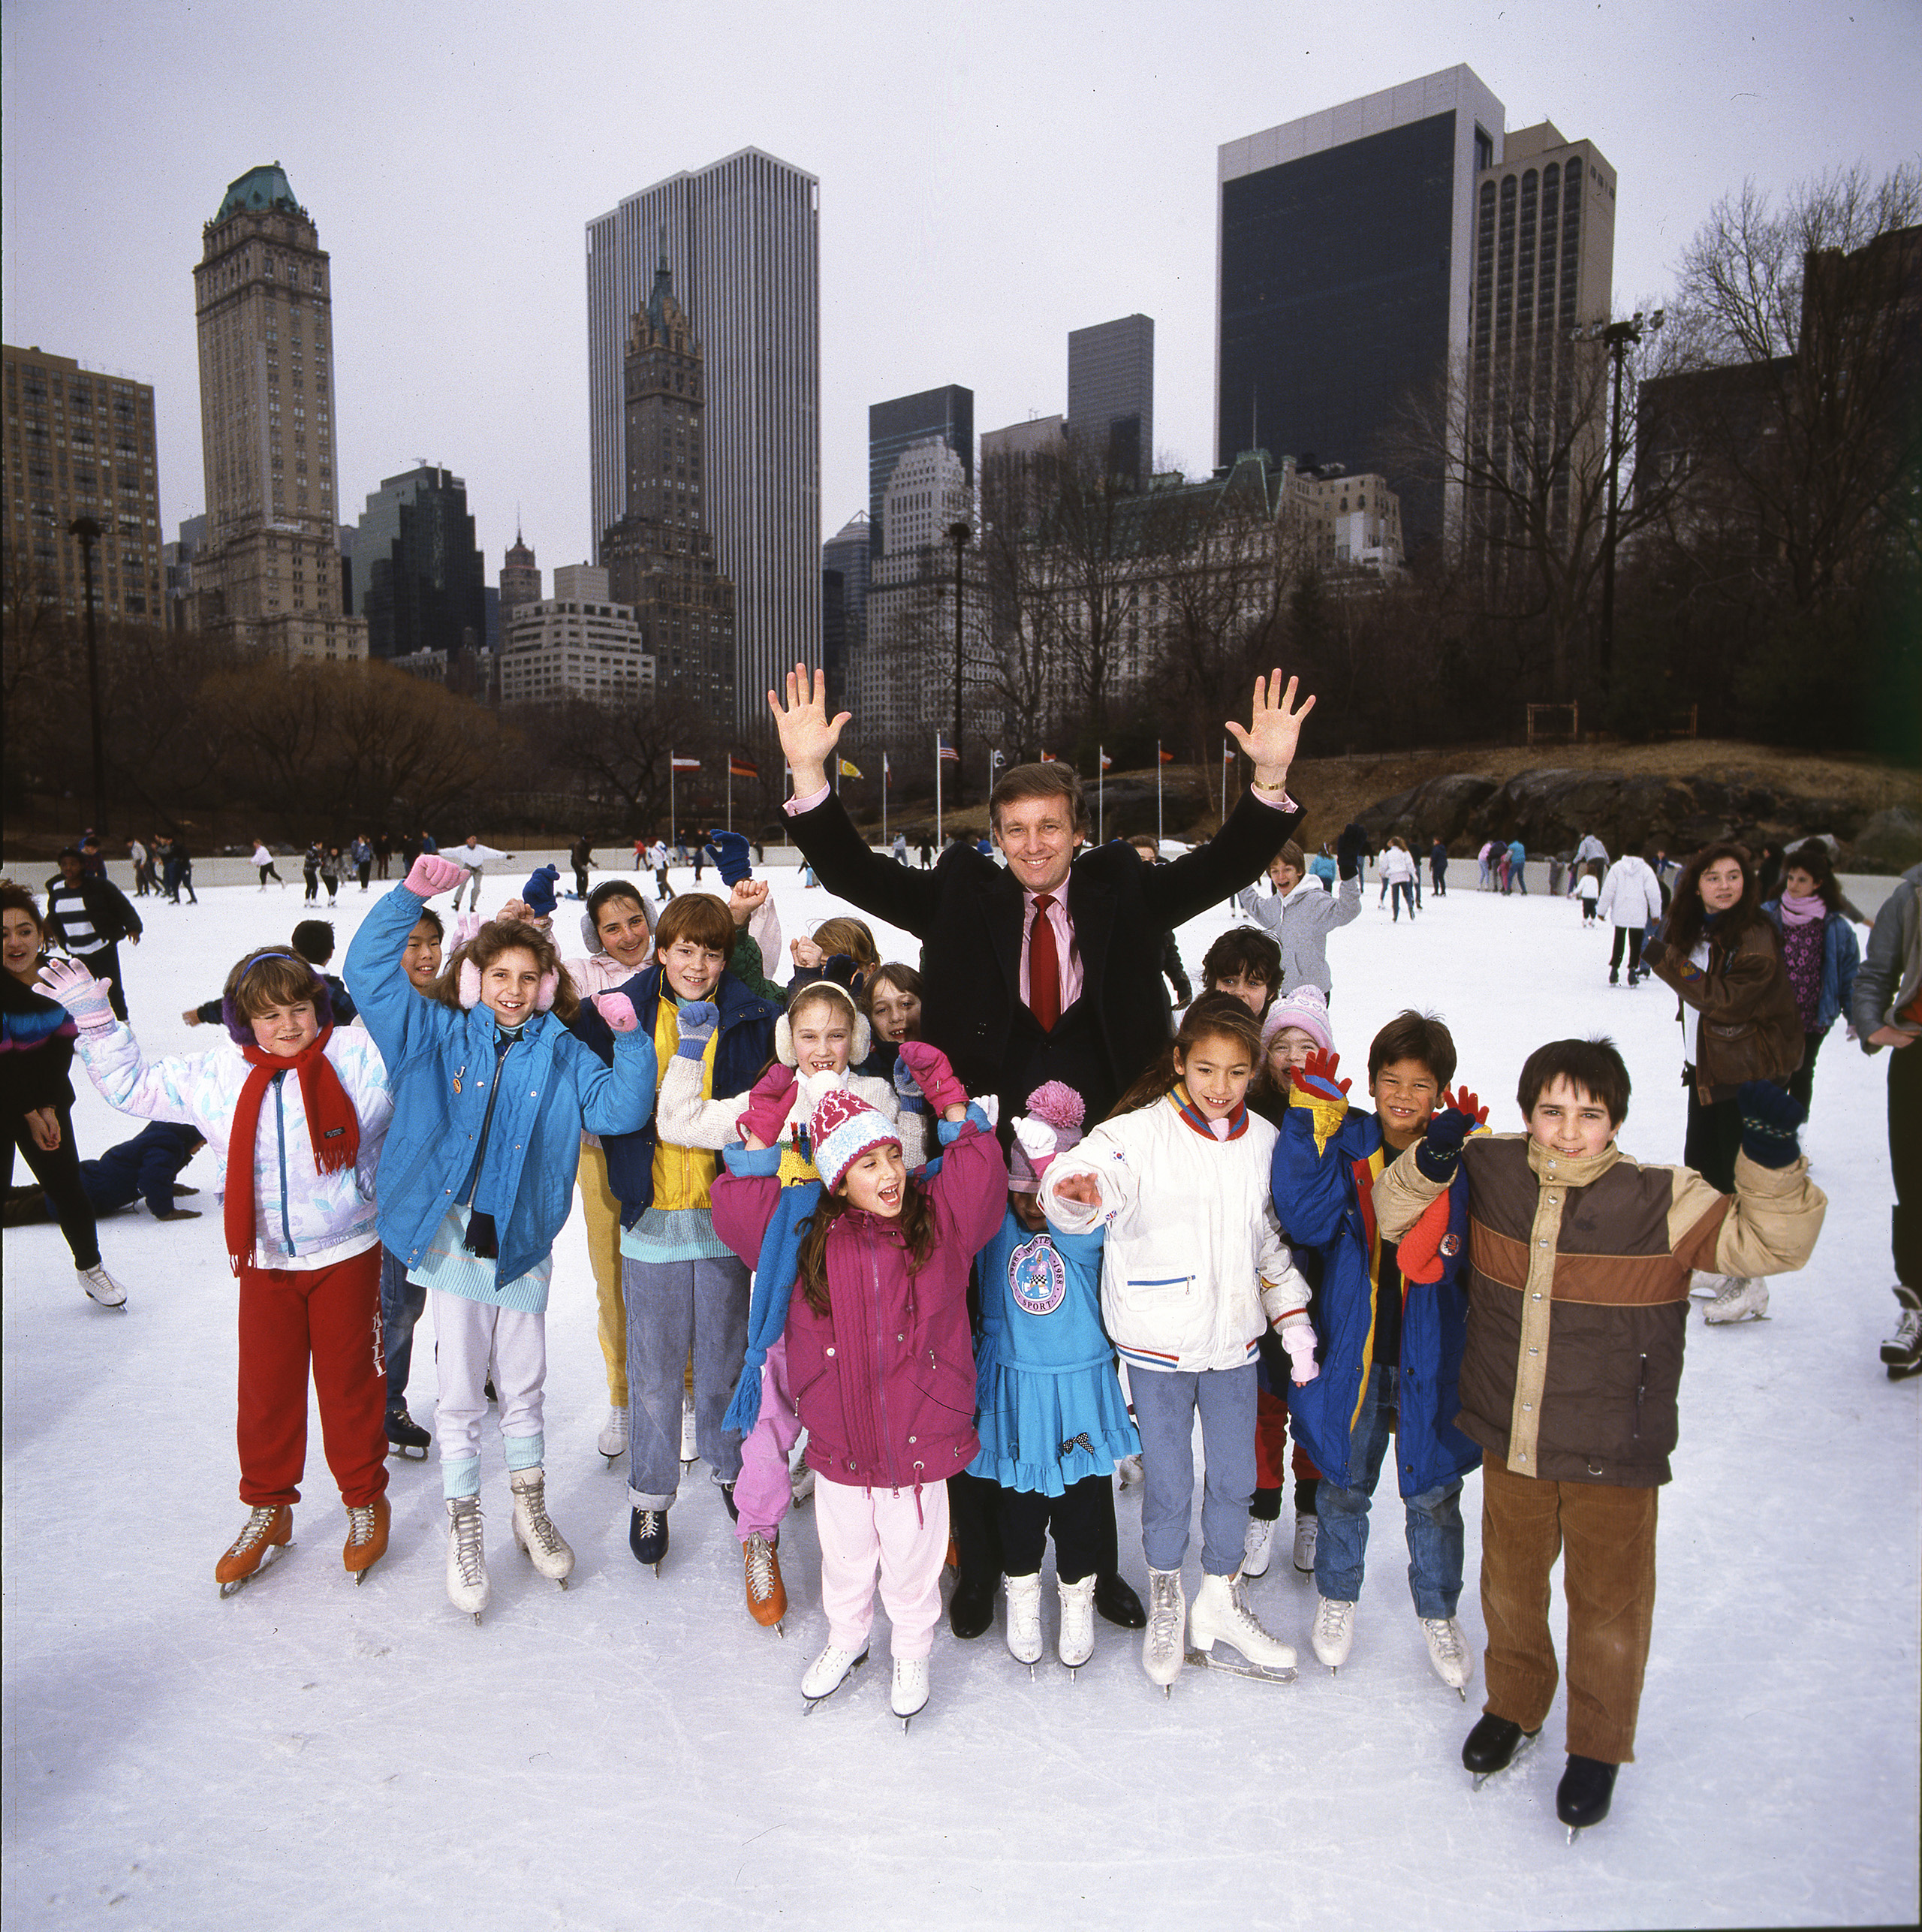 <b>1986</b> Trump celebrates after the completion of repairs to Wollman Rink in Central Park. He got the contract from the city, finishing early and well under budget.